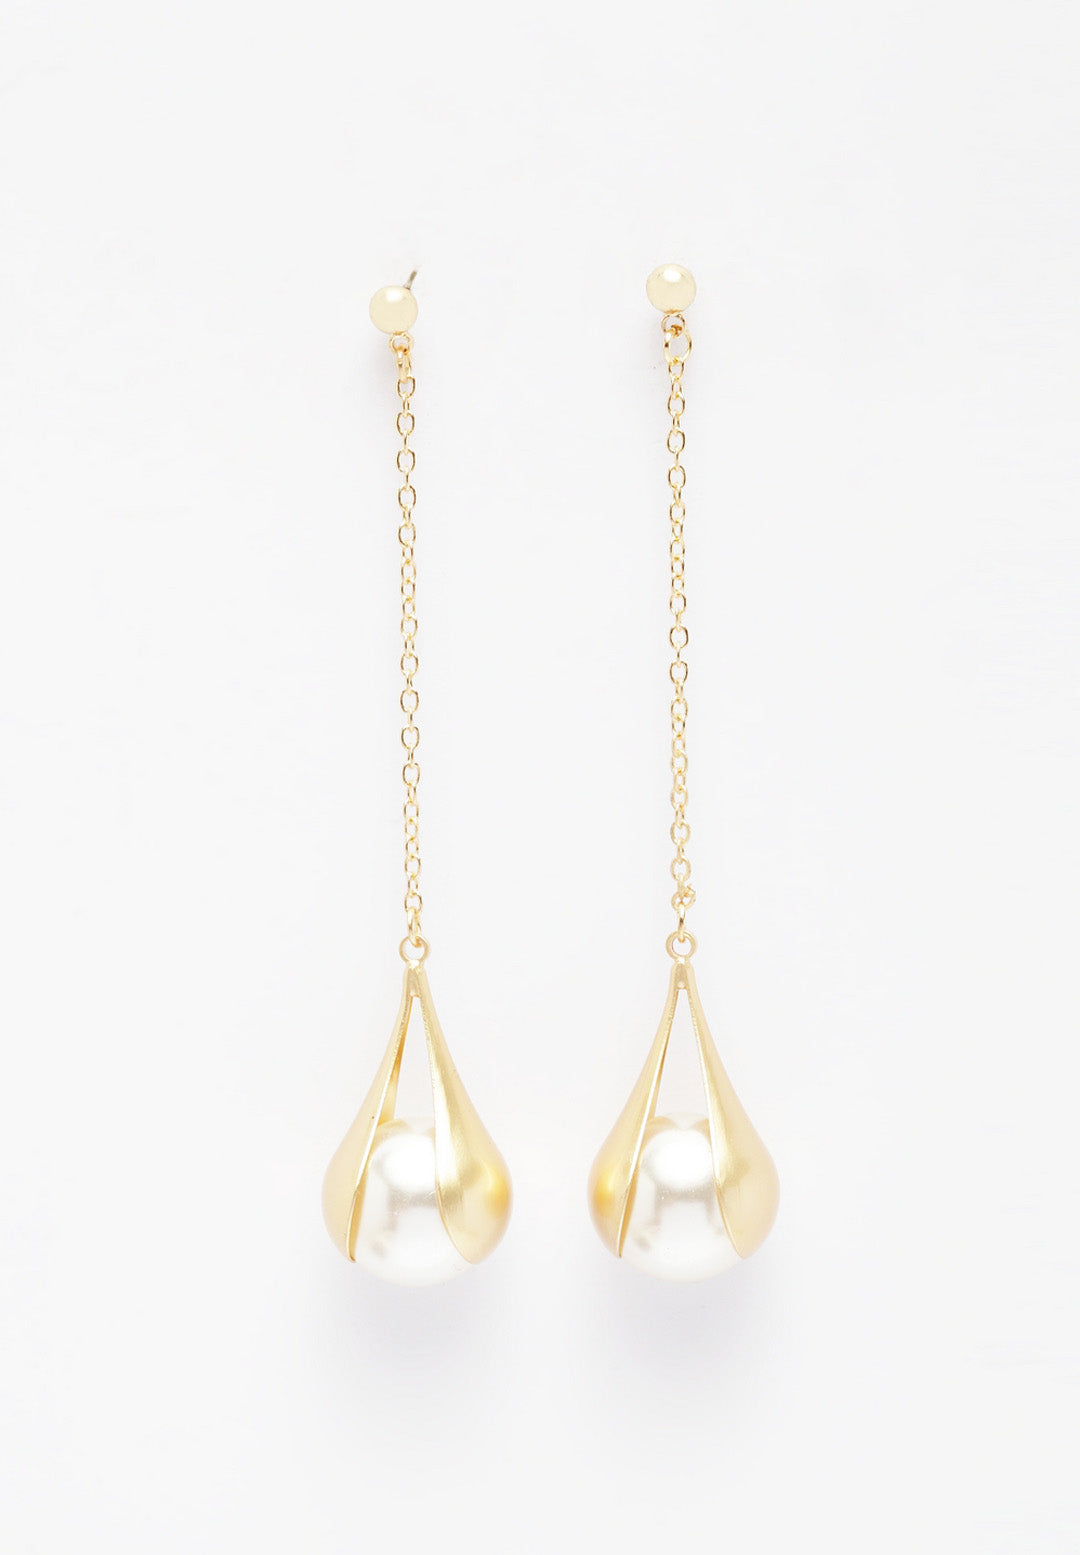 Avant-Garde Paris Gold-Plated Drop Earrings With Pearls